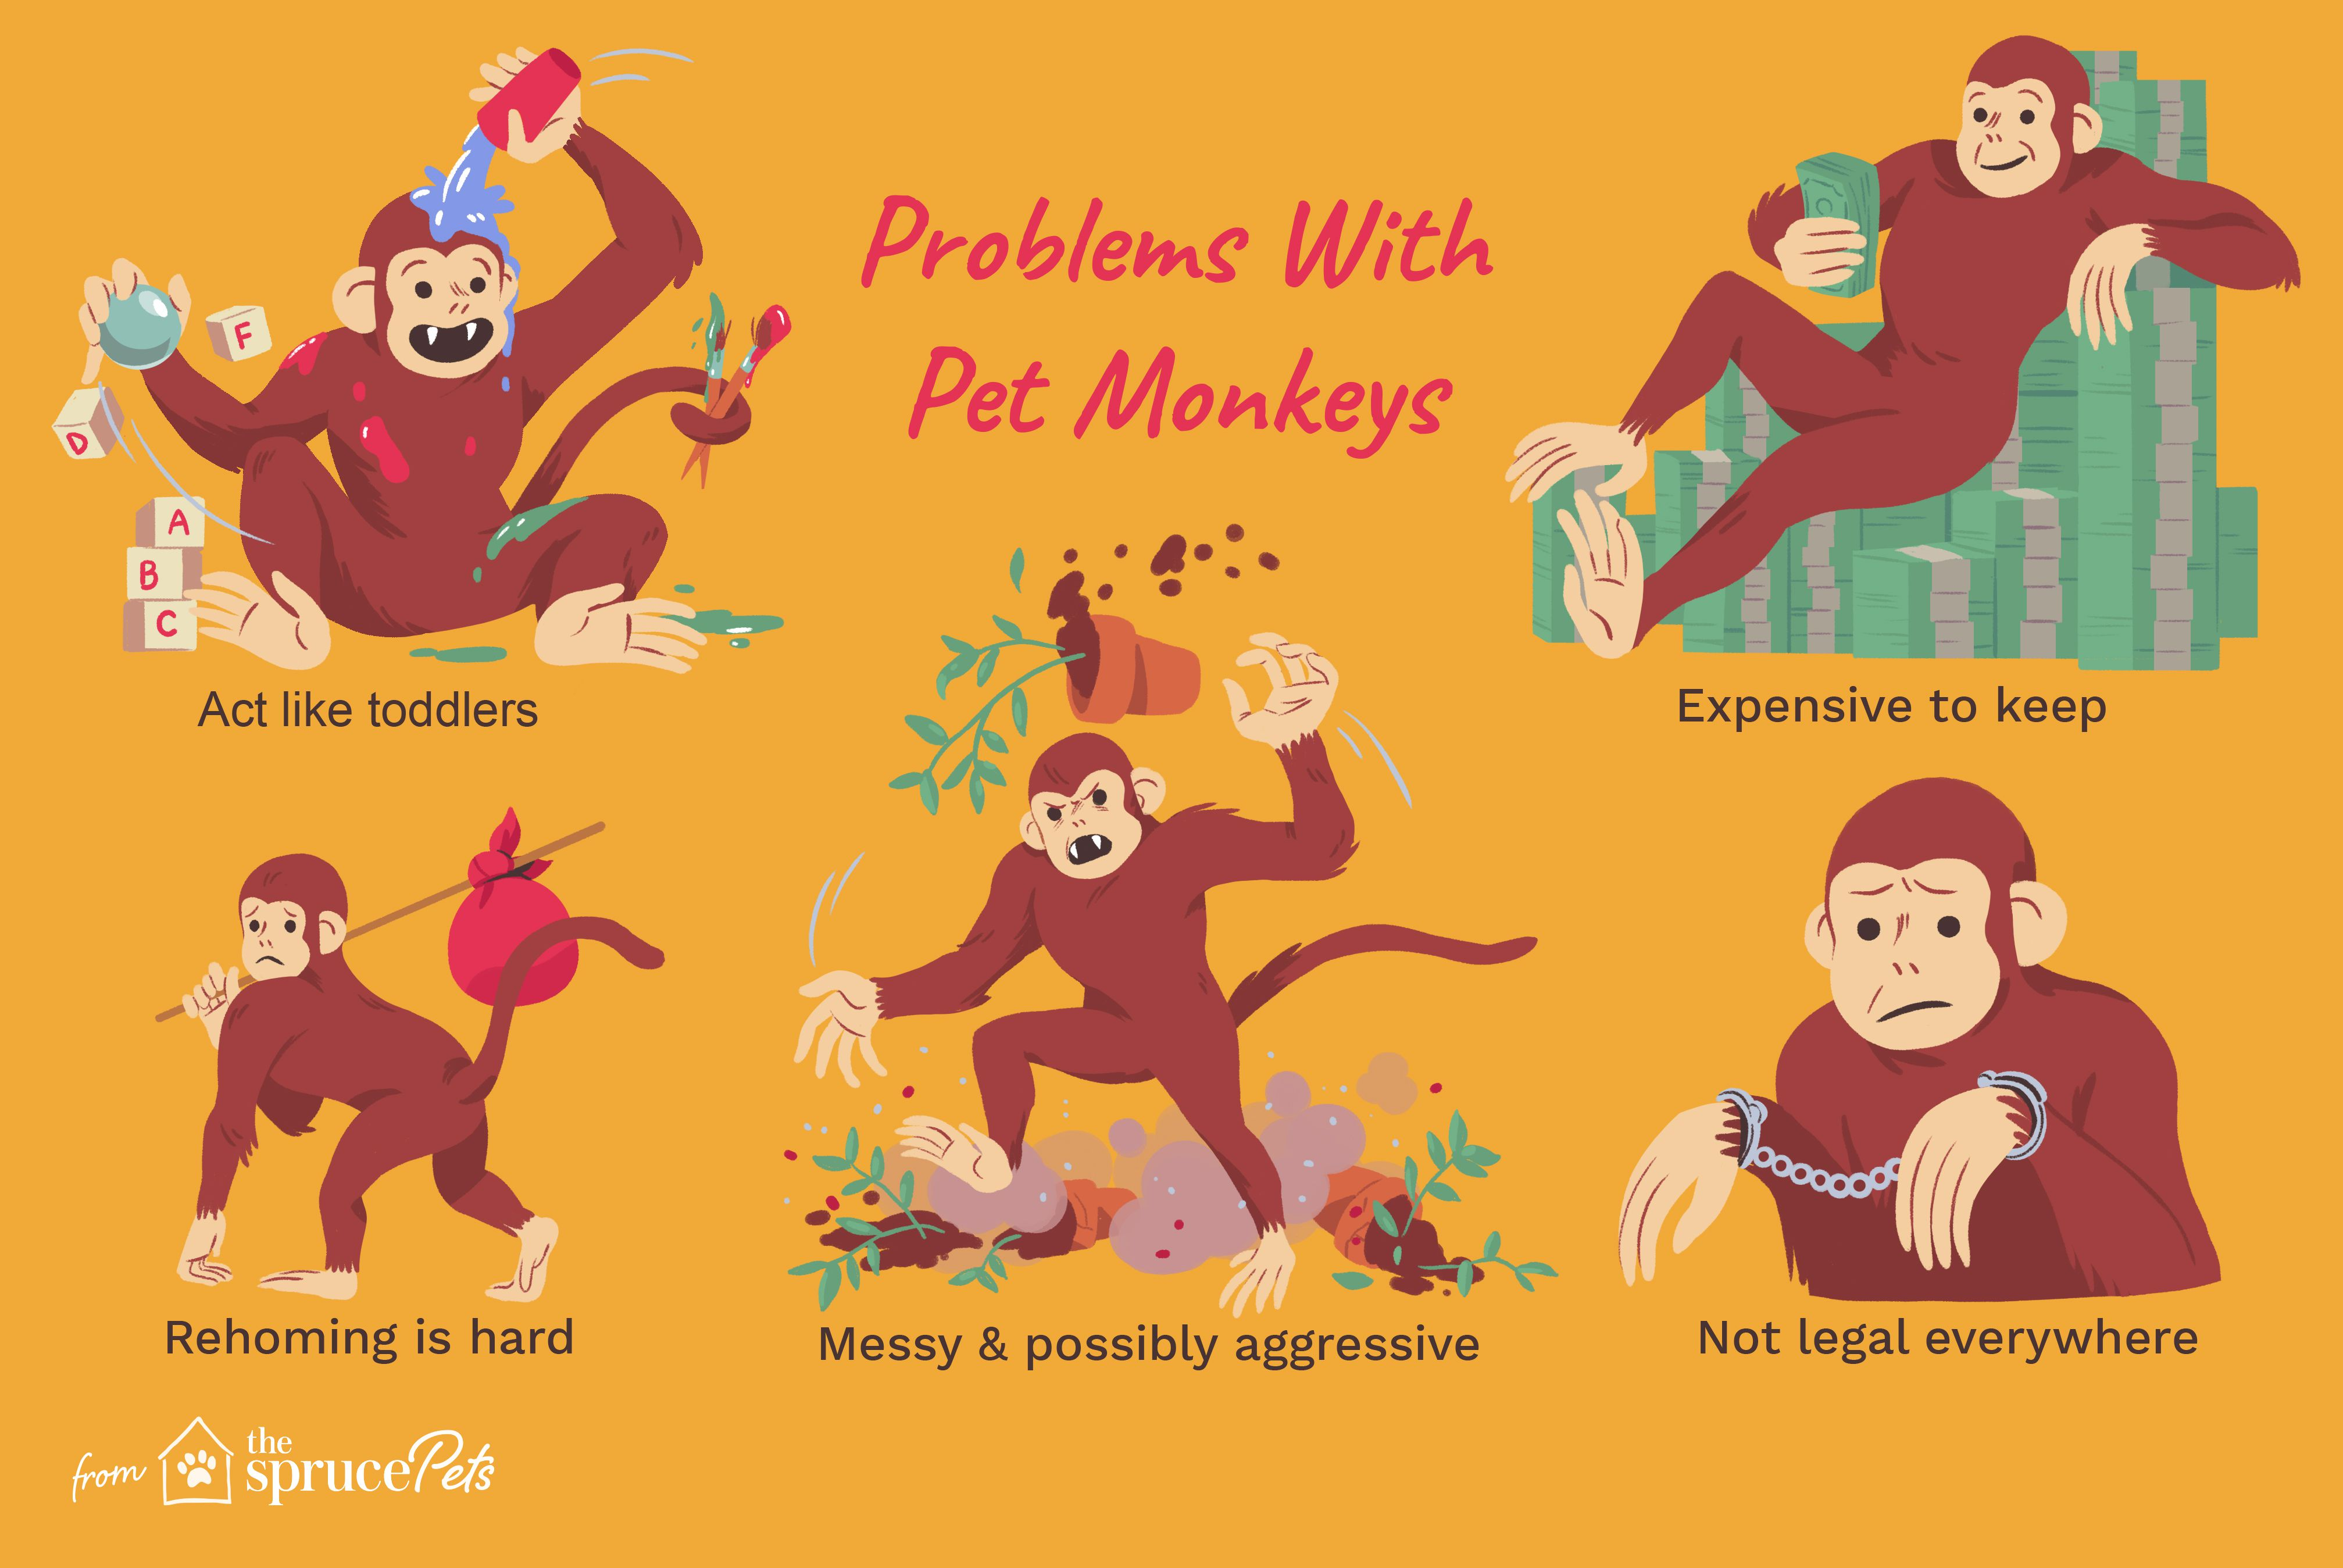 Illustration depicting problems with owning pet monkeys